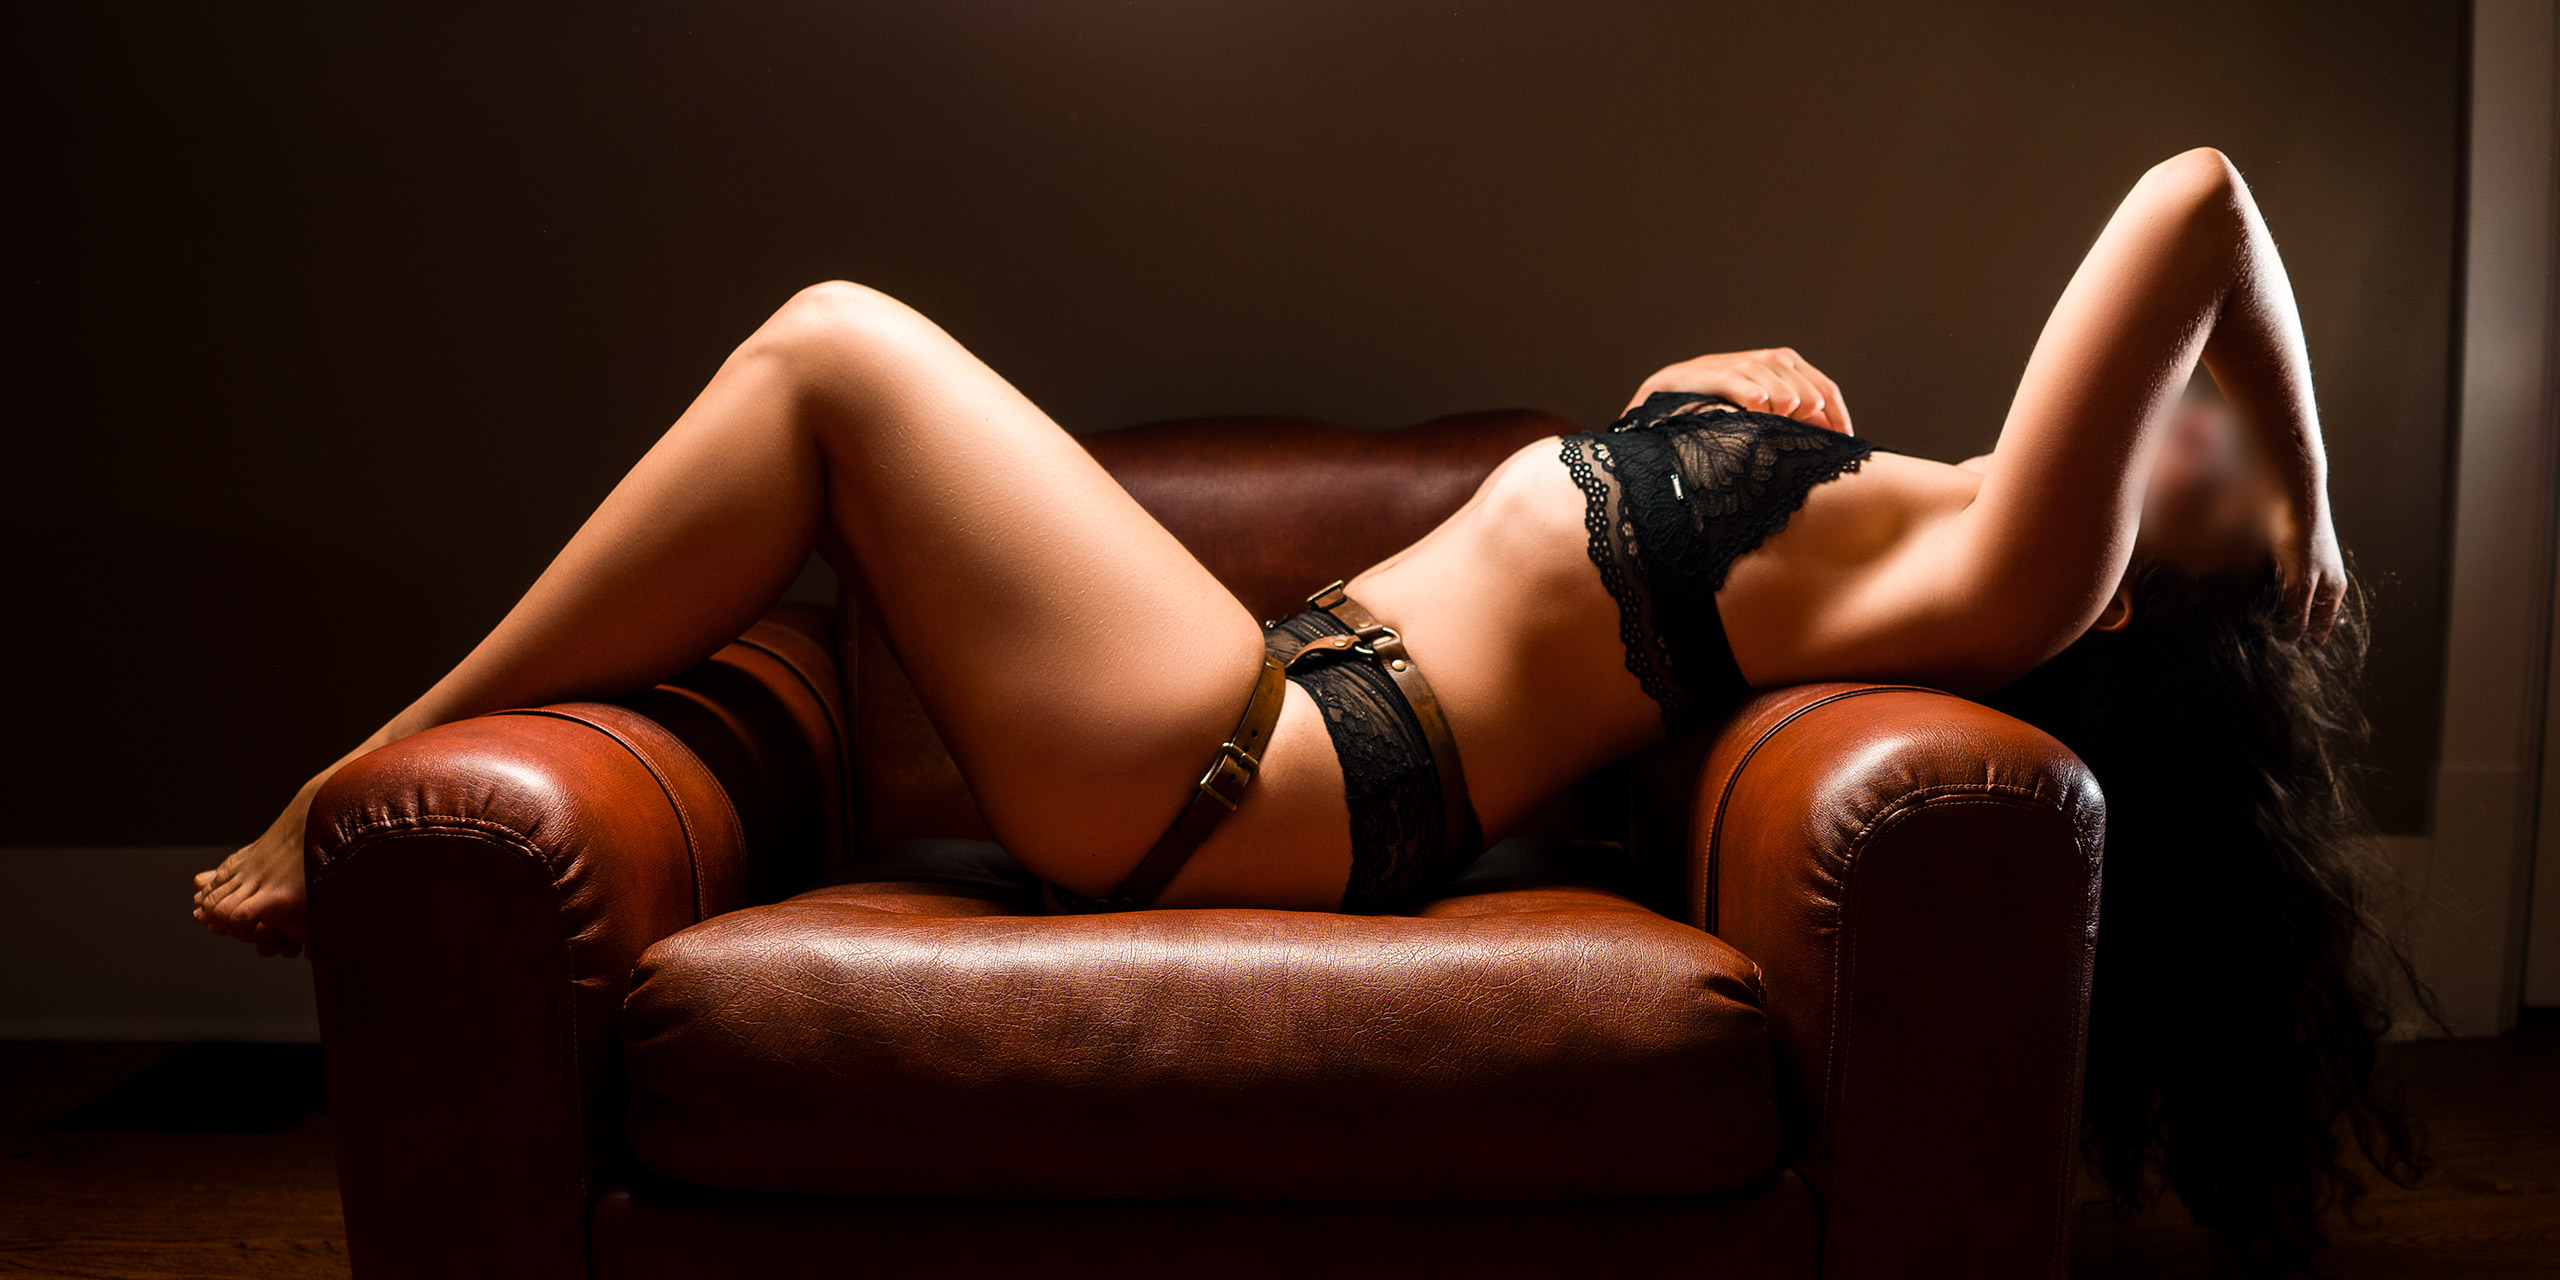 Taylor lying on a chair at Island's Finest escort agency in Victoria BC